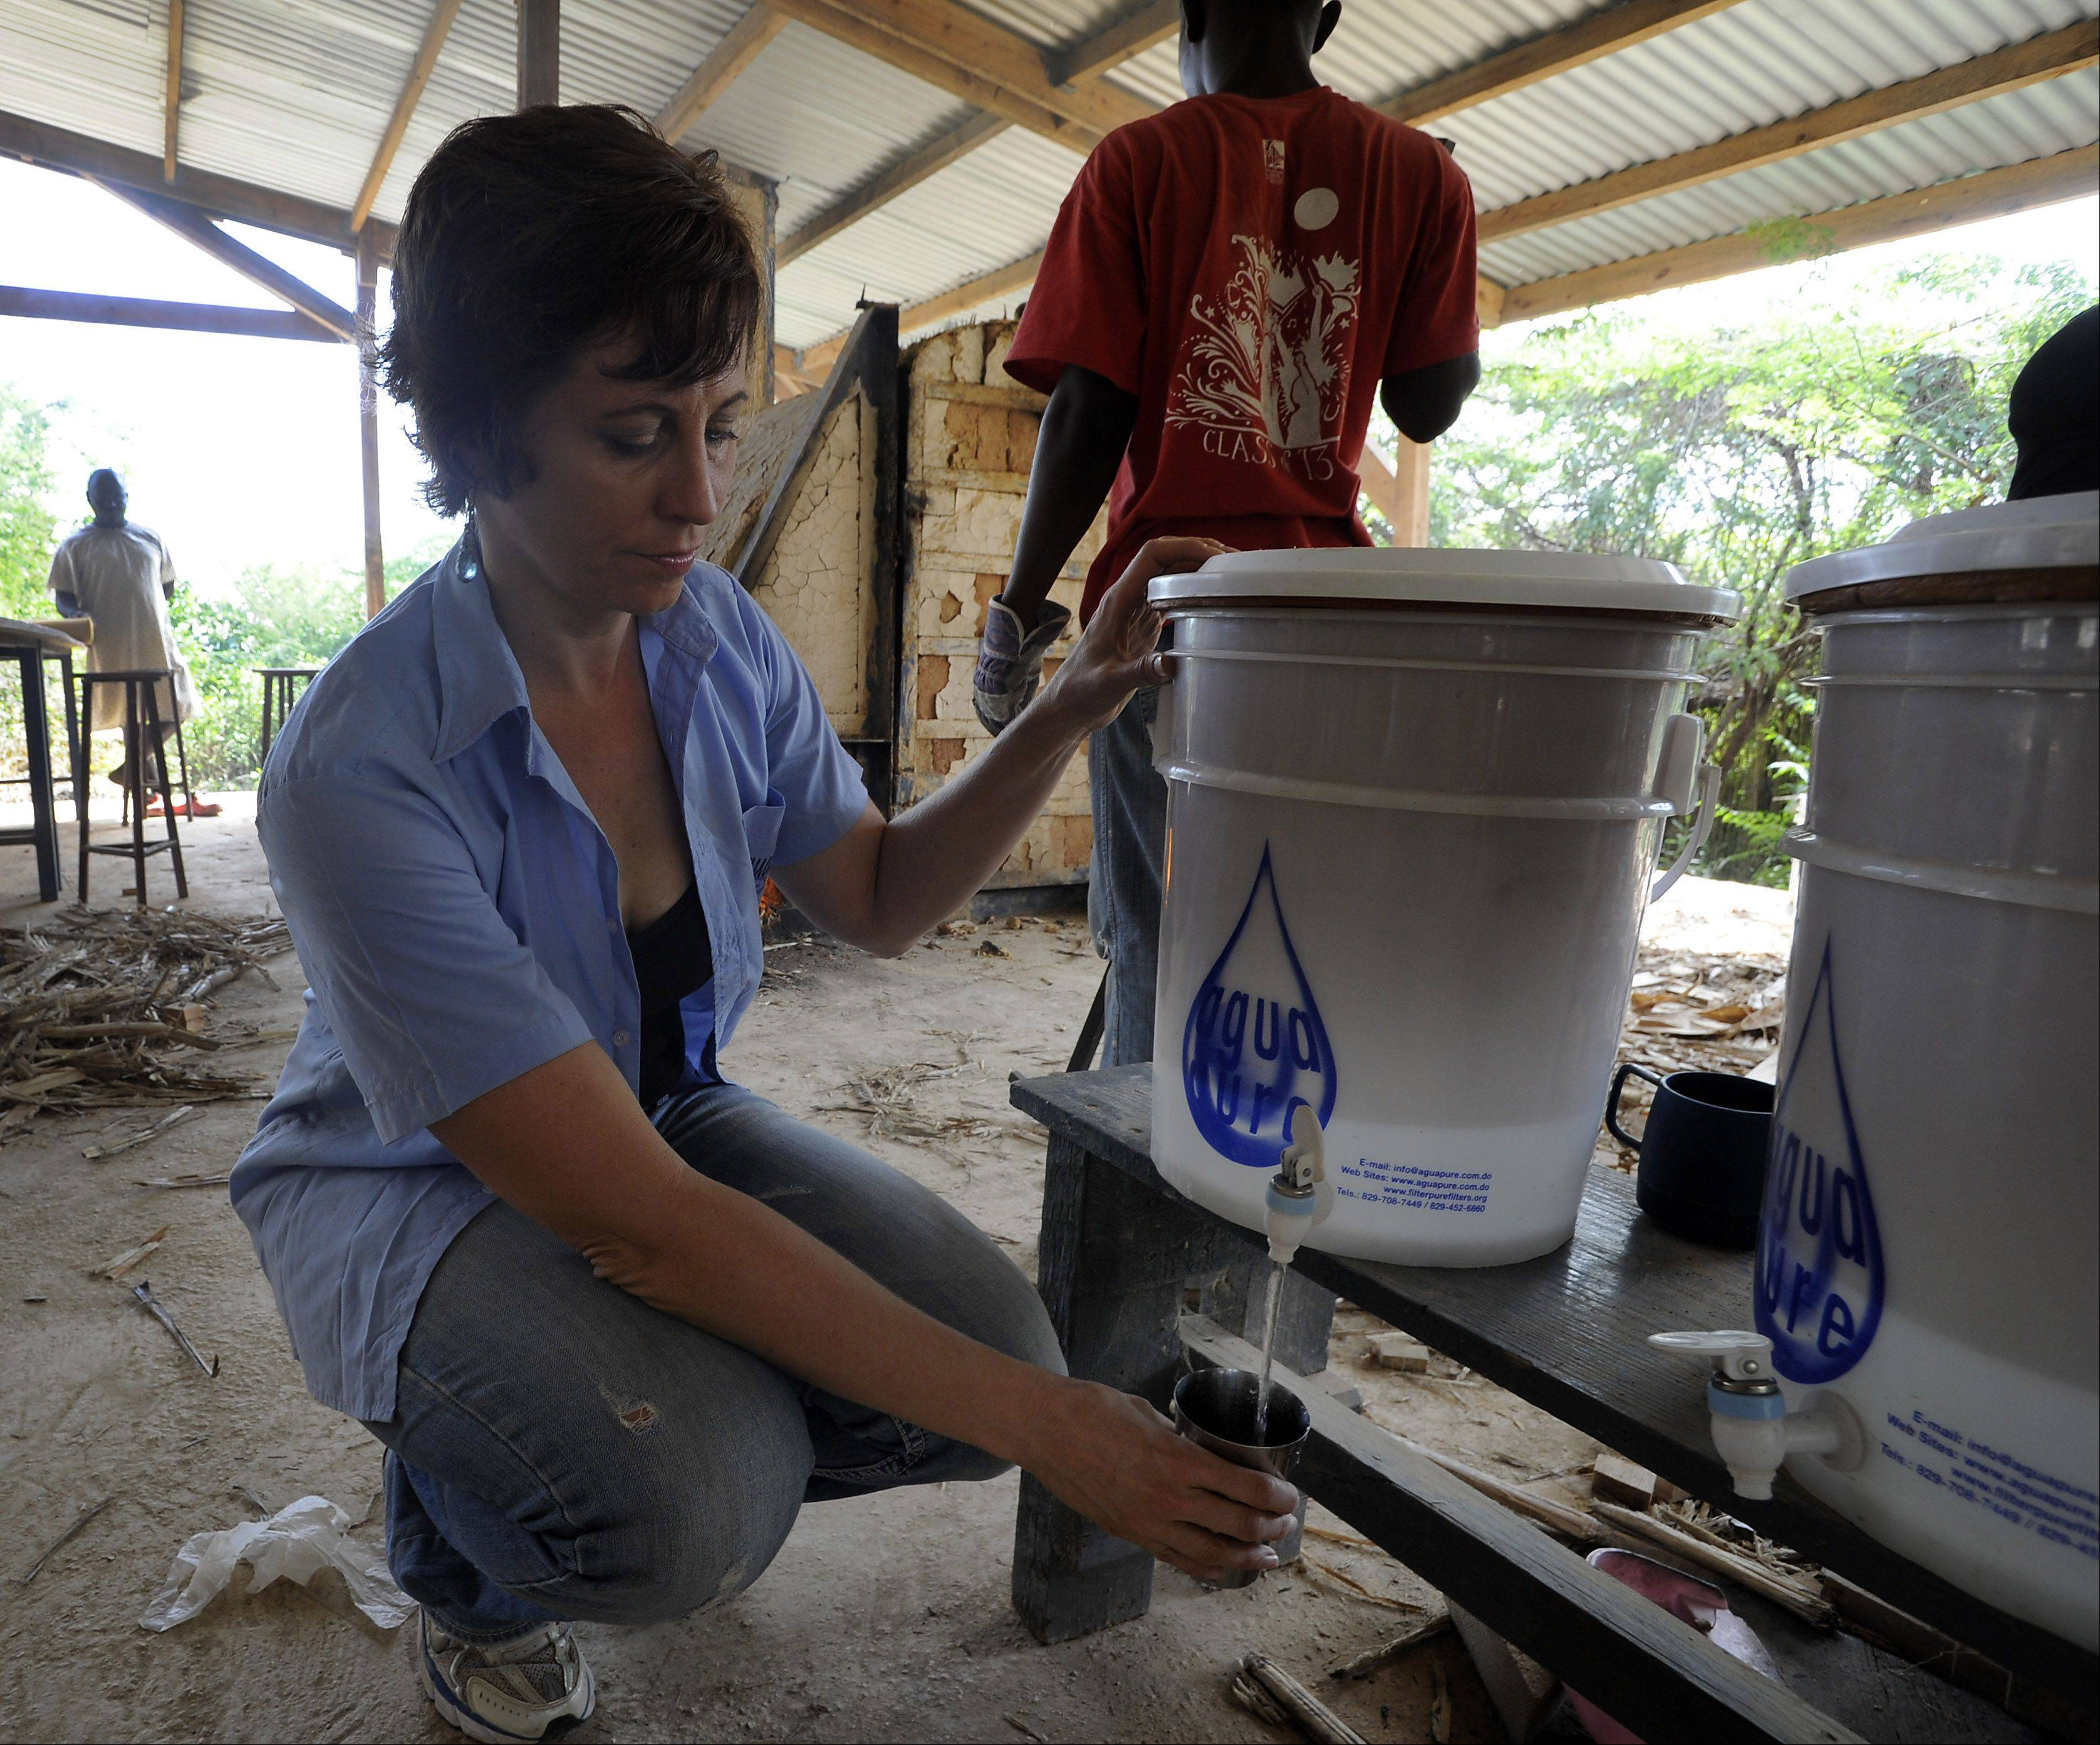 Lisa Ballantine, director of FilterPure, takes a drink from one of her charity�s water filters in a factory in Jacmel, Haiti, as workers fire more filters in the kiln behind her.